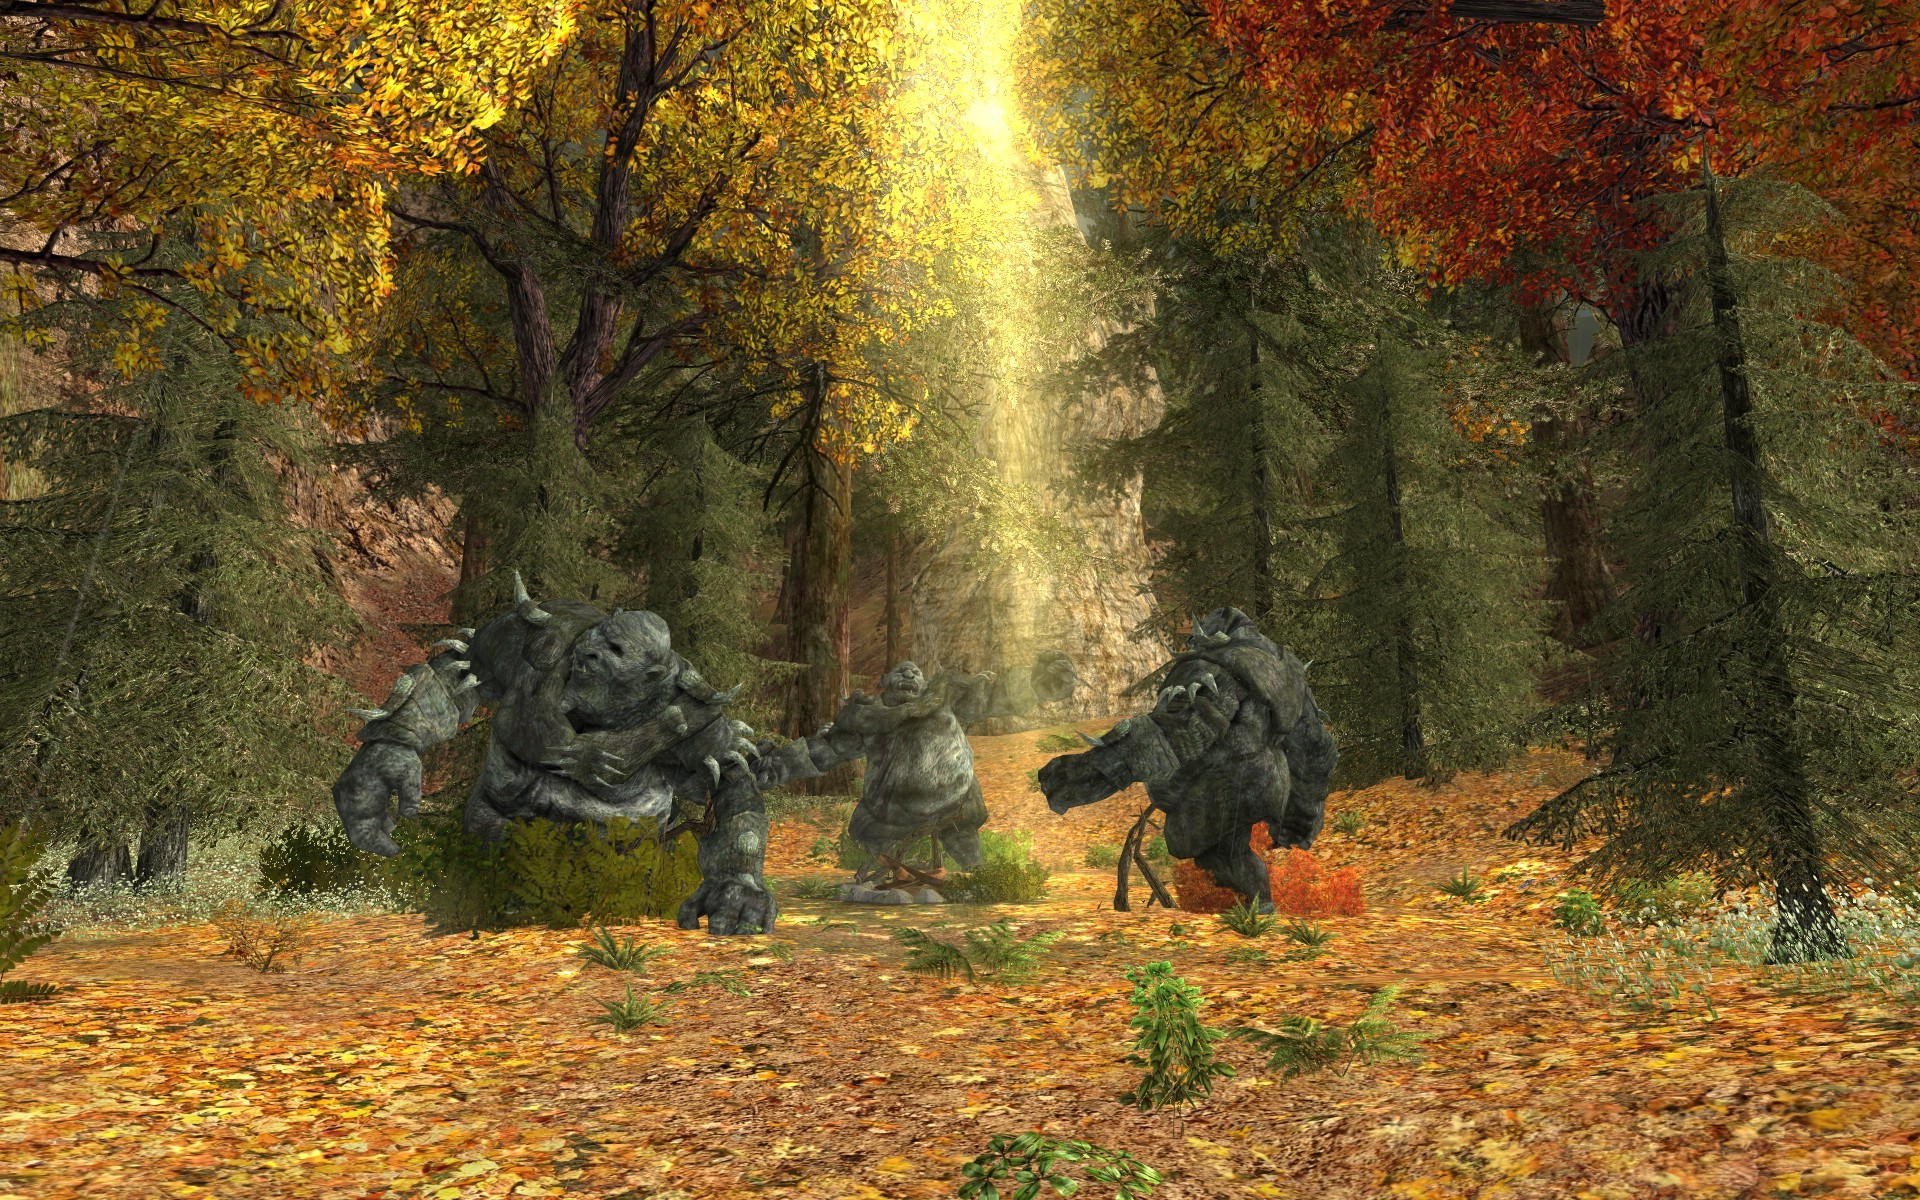 Lord of the Rings Online - The Stone Trolls of Rivendell